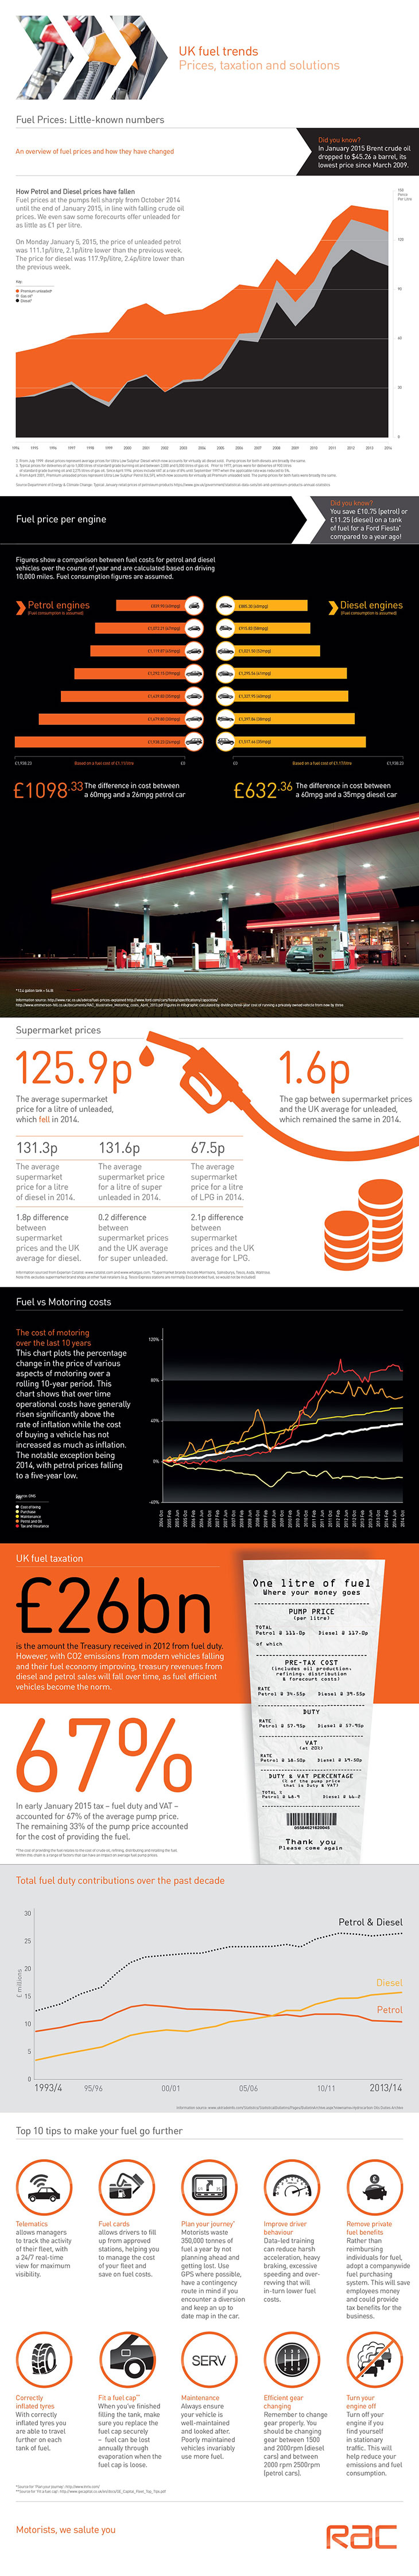 The RAC Fuel Card UK Fuel Trends Infographic